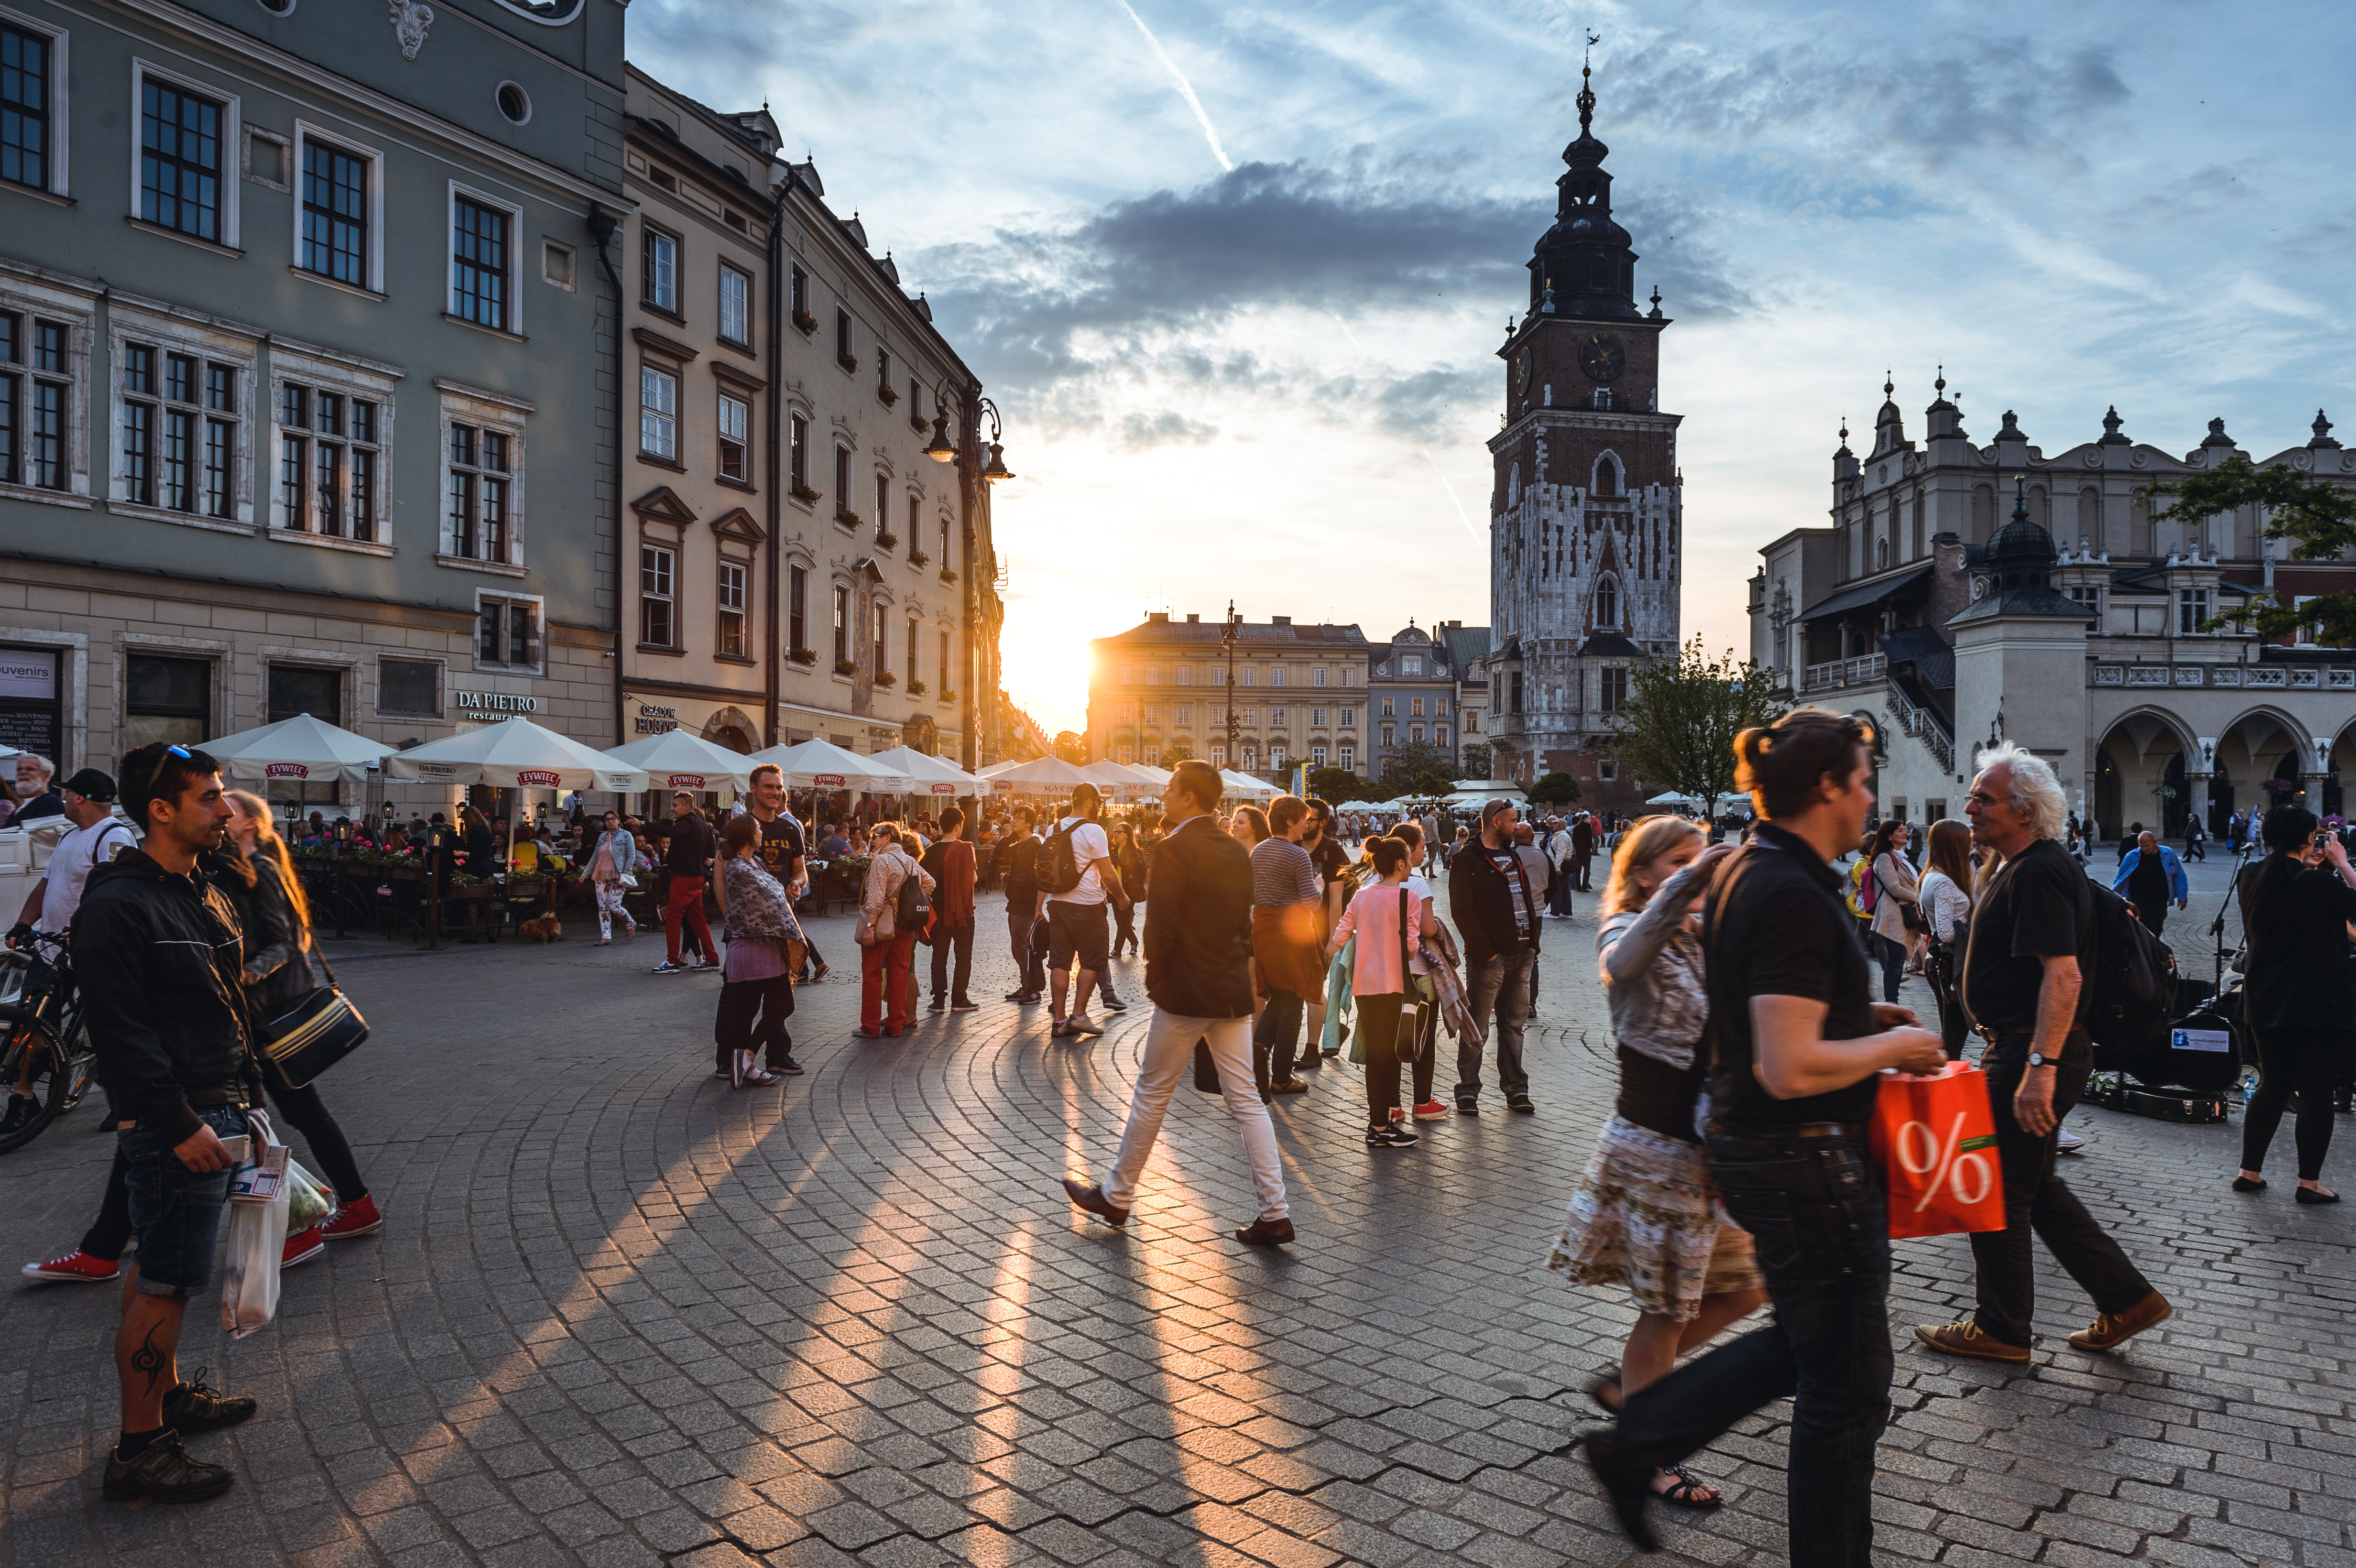 Tourists on Main Market Square in Krakow, Poland.